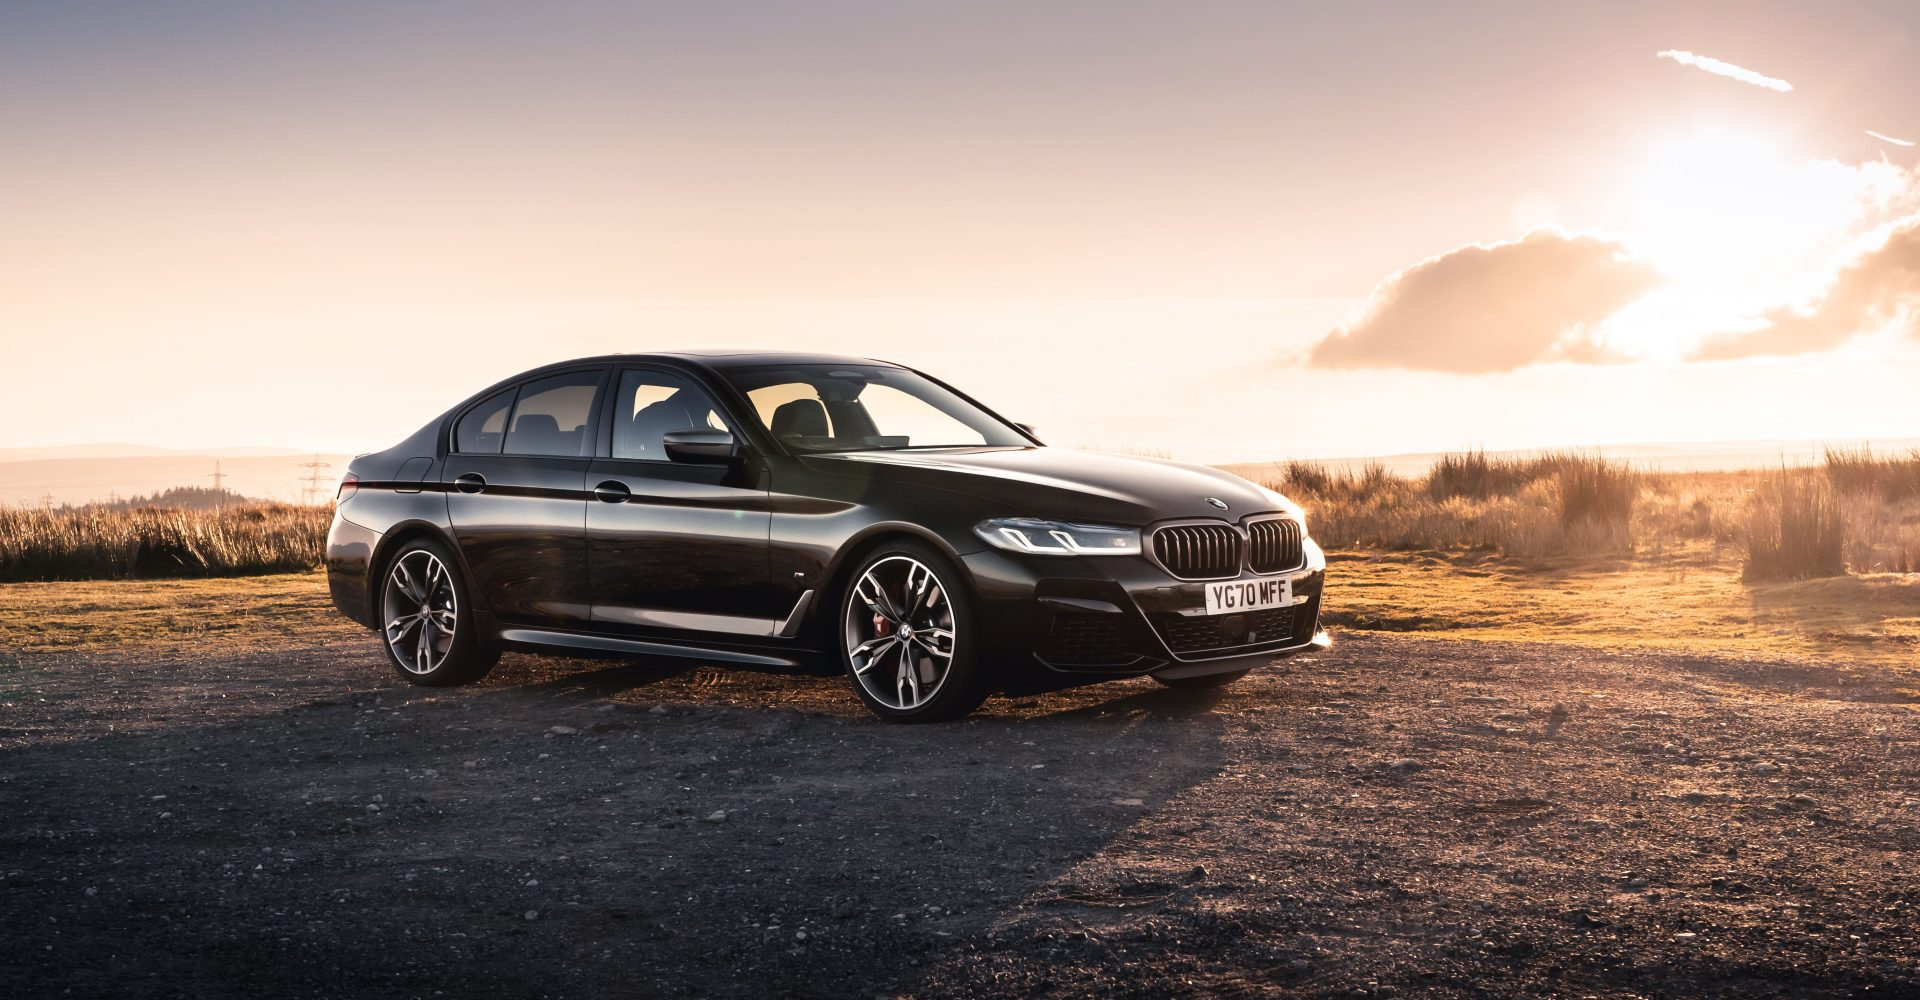 First Drive: Is the updated BMW 5 Series still a class leader?